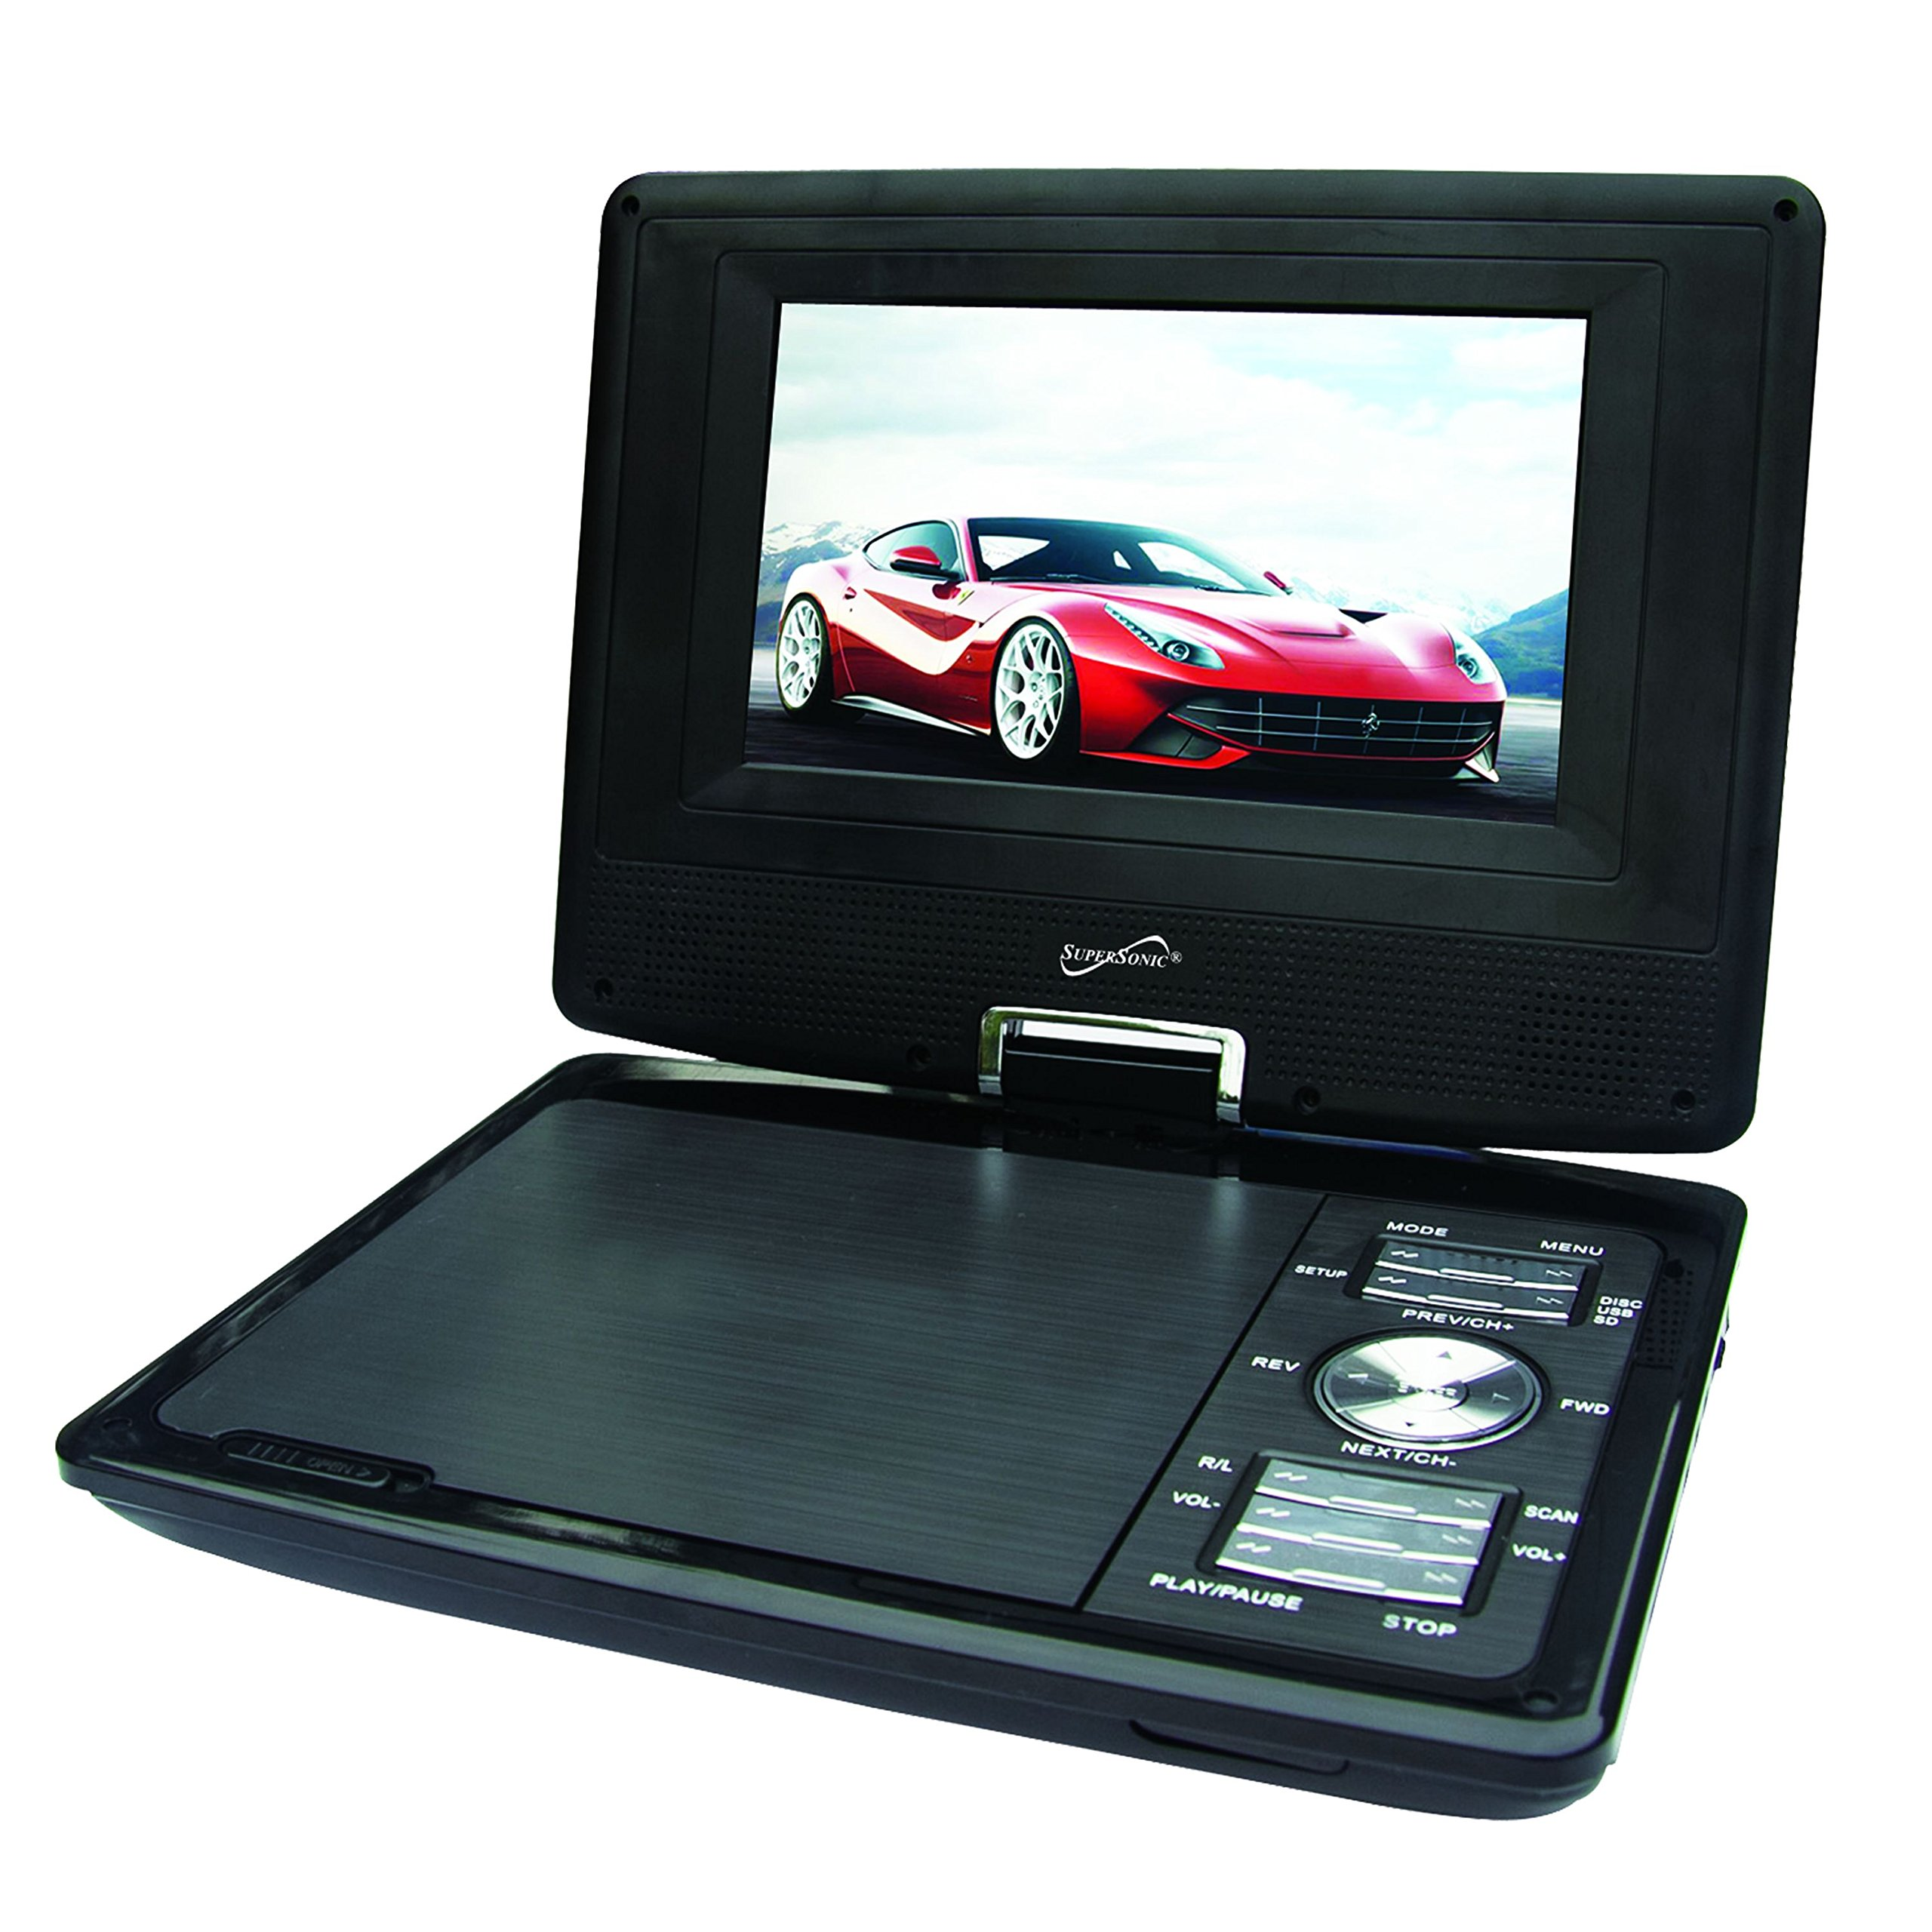 SuperSonic Portable TFT Swivel Display DVD Player with Digital TV Tuner, USB/SD Inputs and AC/DC Compatible for RVs, 7-Inch